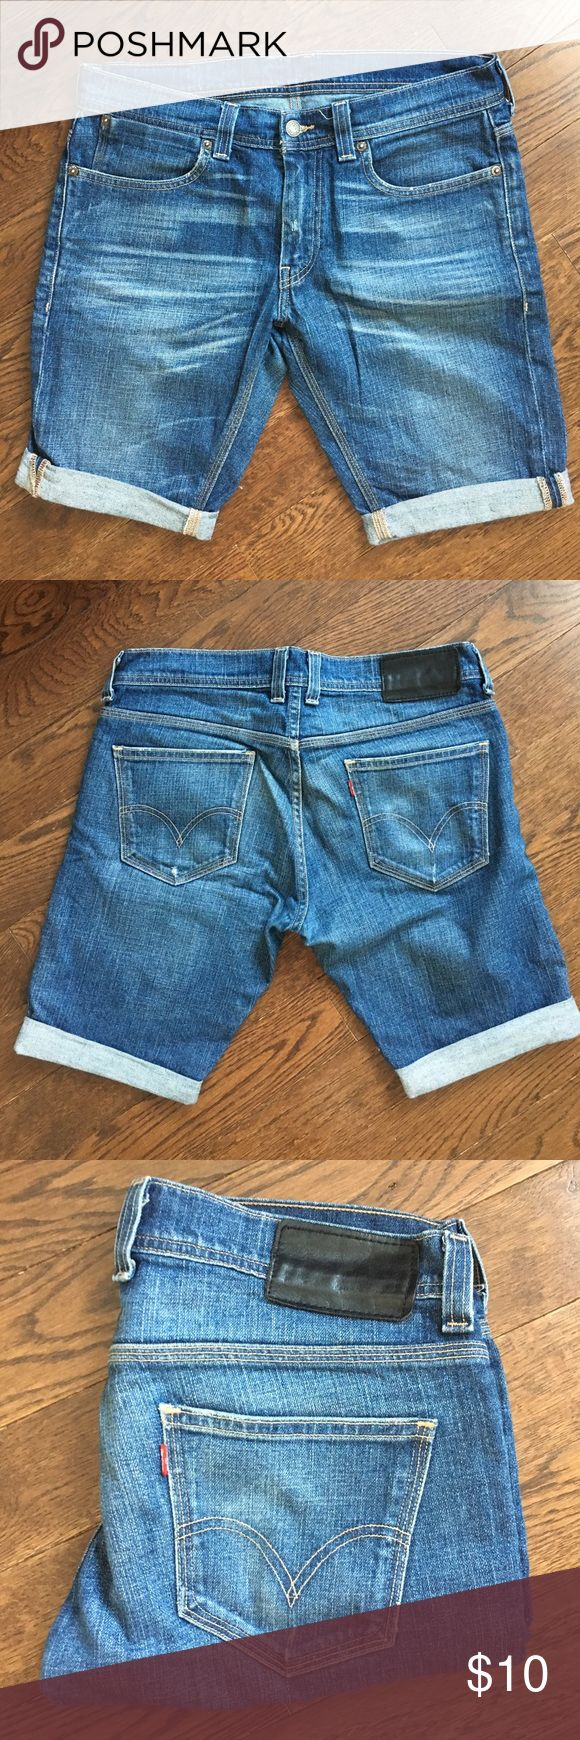 Levi's 511 slim cut off shorts Levis 511 shorts in Great condition. Slim fit, can roll down cuffs to make them a bit longer. Levi's Shorts Jean Shorts